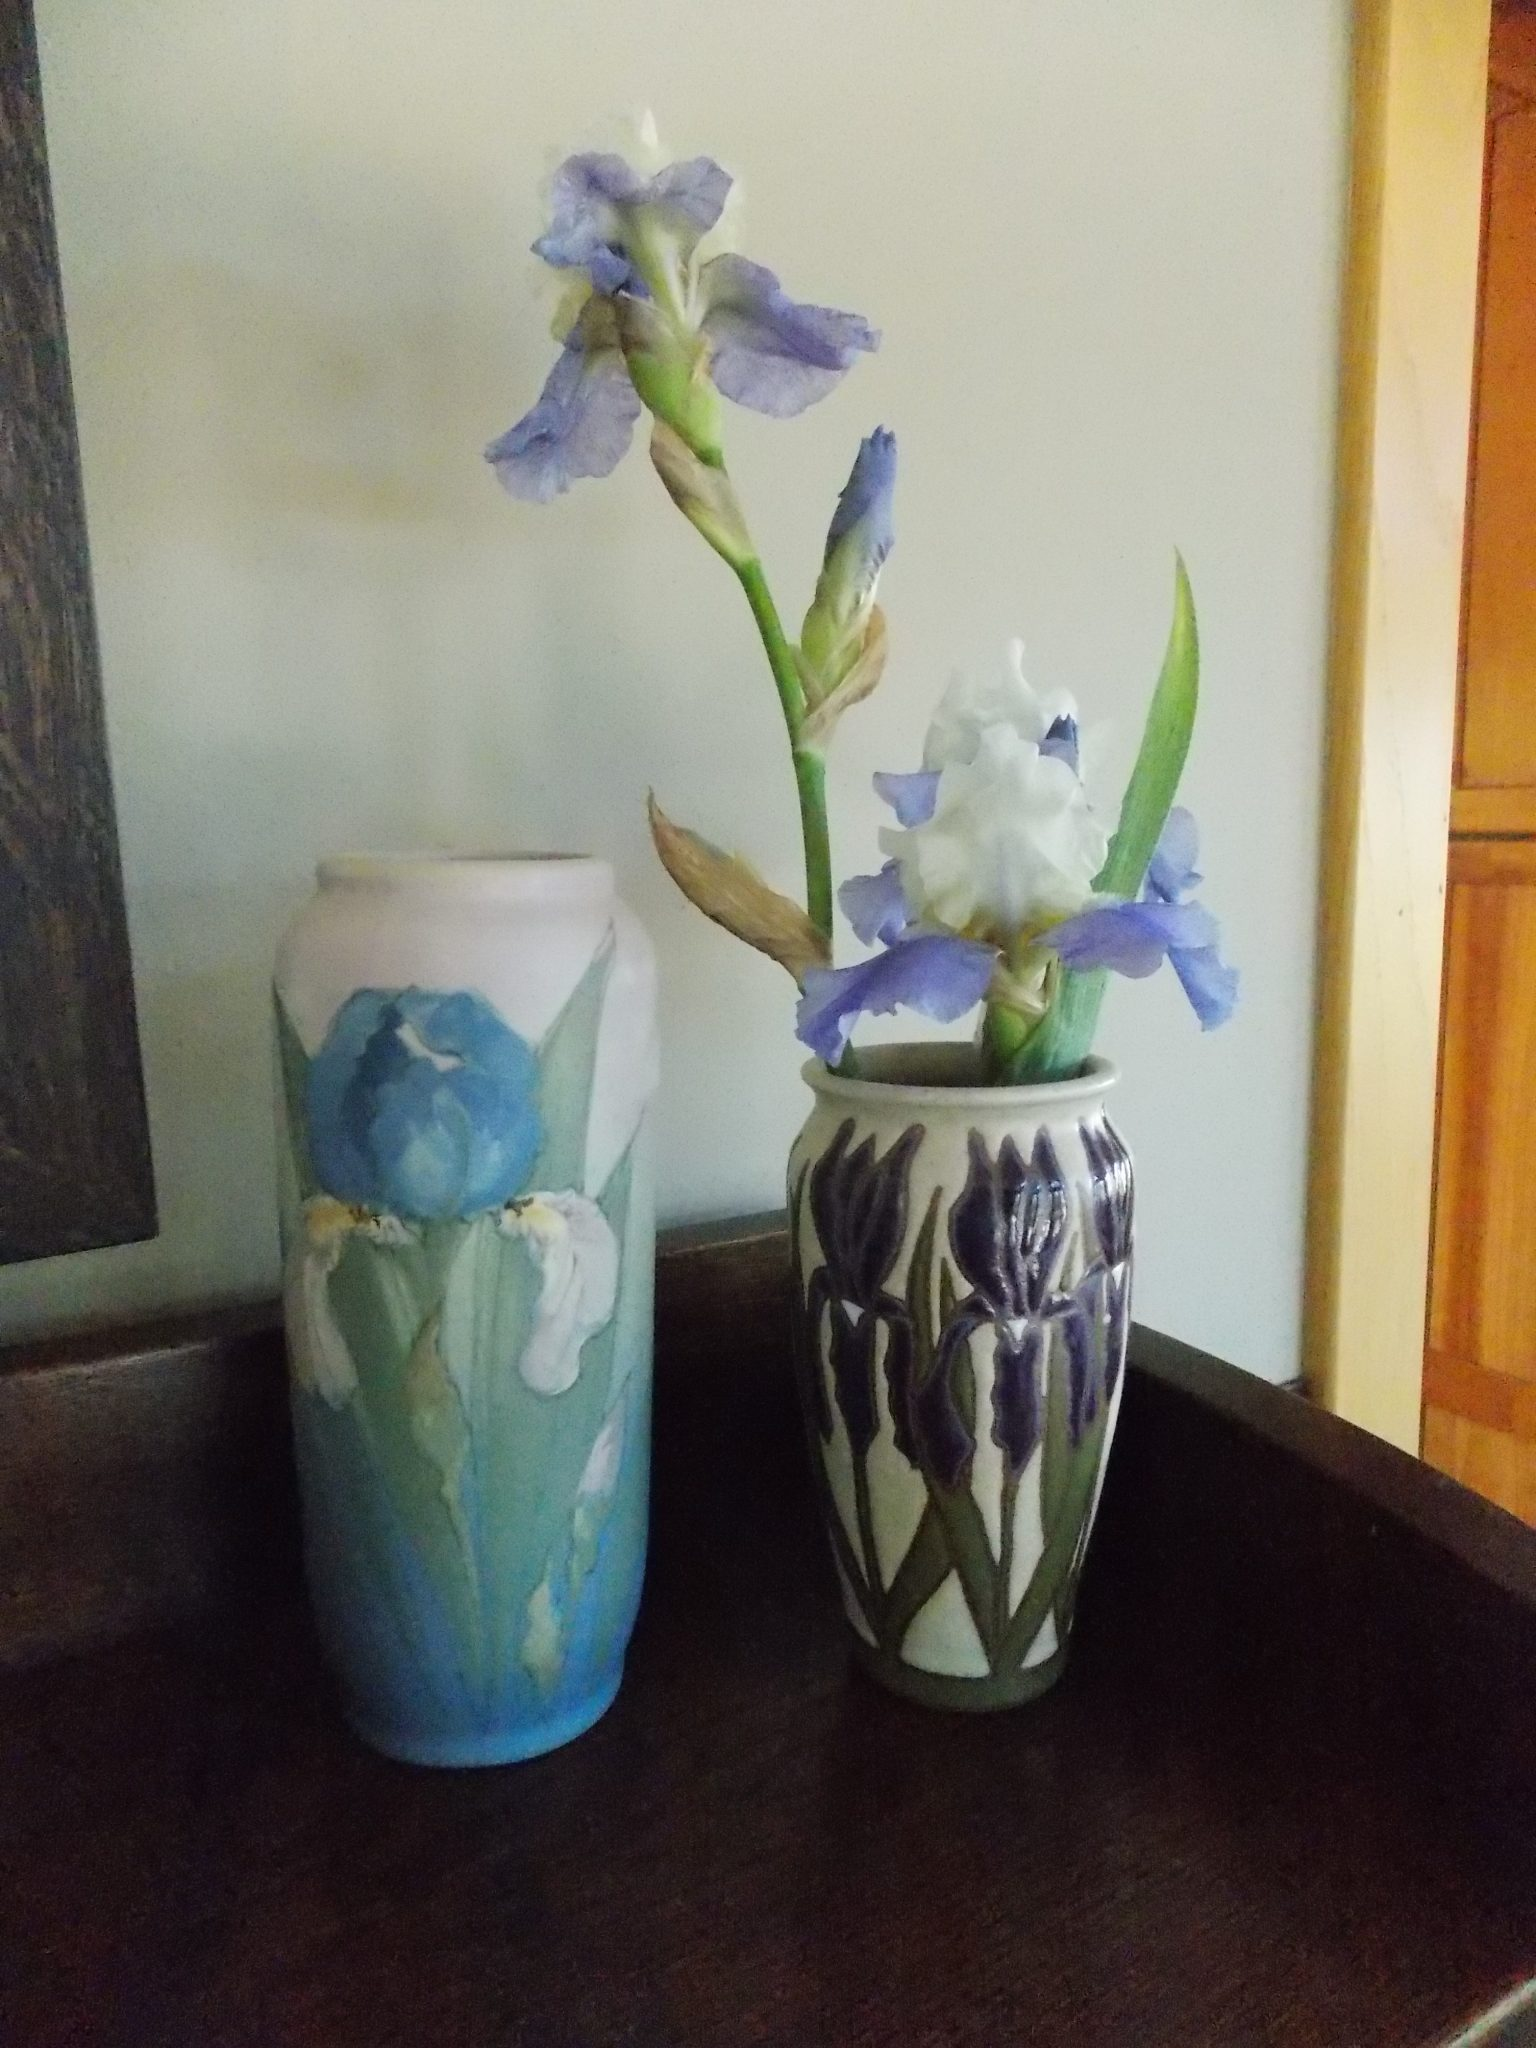 An arts and crafts garden retreat arts and crafts collector leave some of our iris stalks bent and broken leigh ann carefully gathers them up and brings them indoors selecting just the right vases for them reviewsmspy